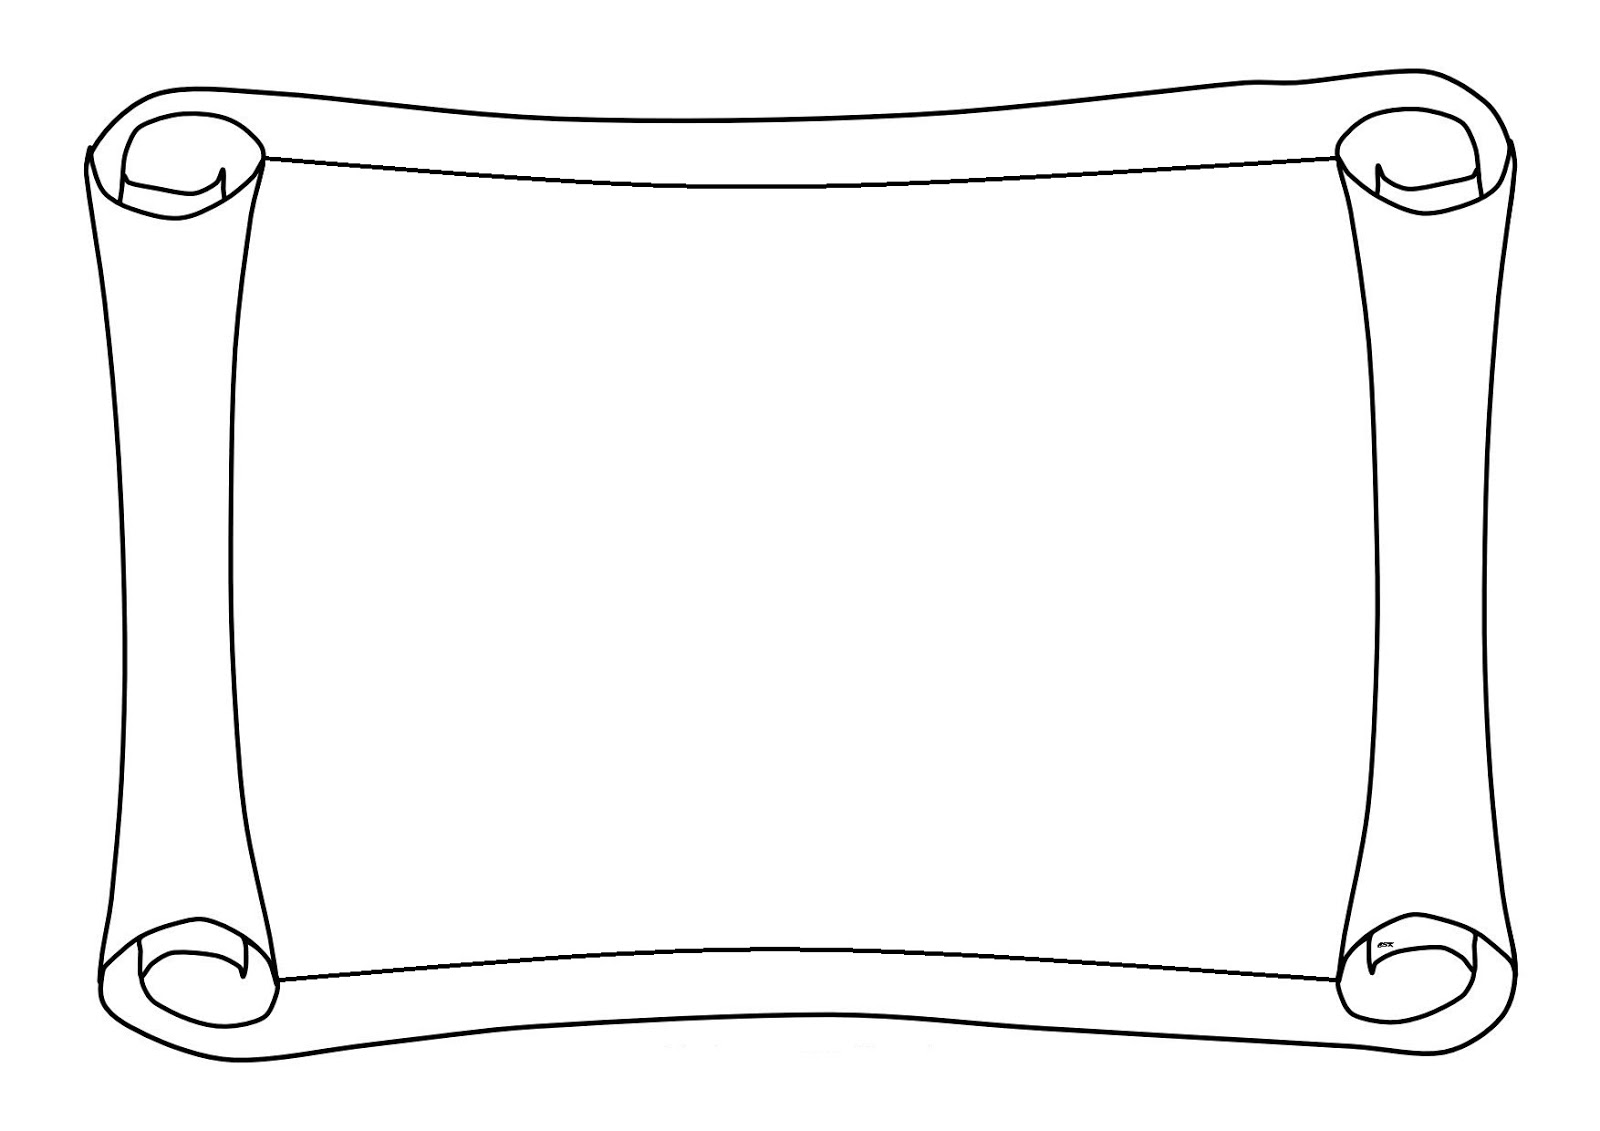 A4 SIZE Simple BORDER DESIGNS FOR PC ASSIGNMENT | (: We ...